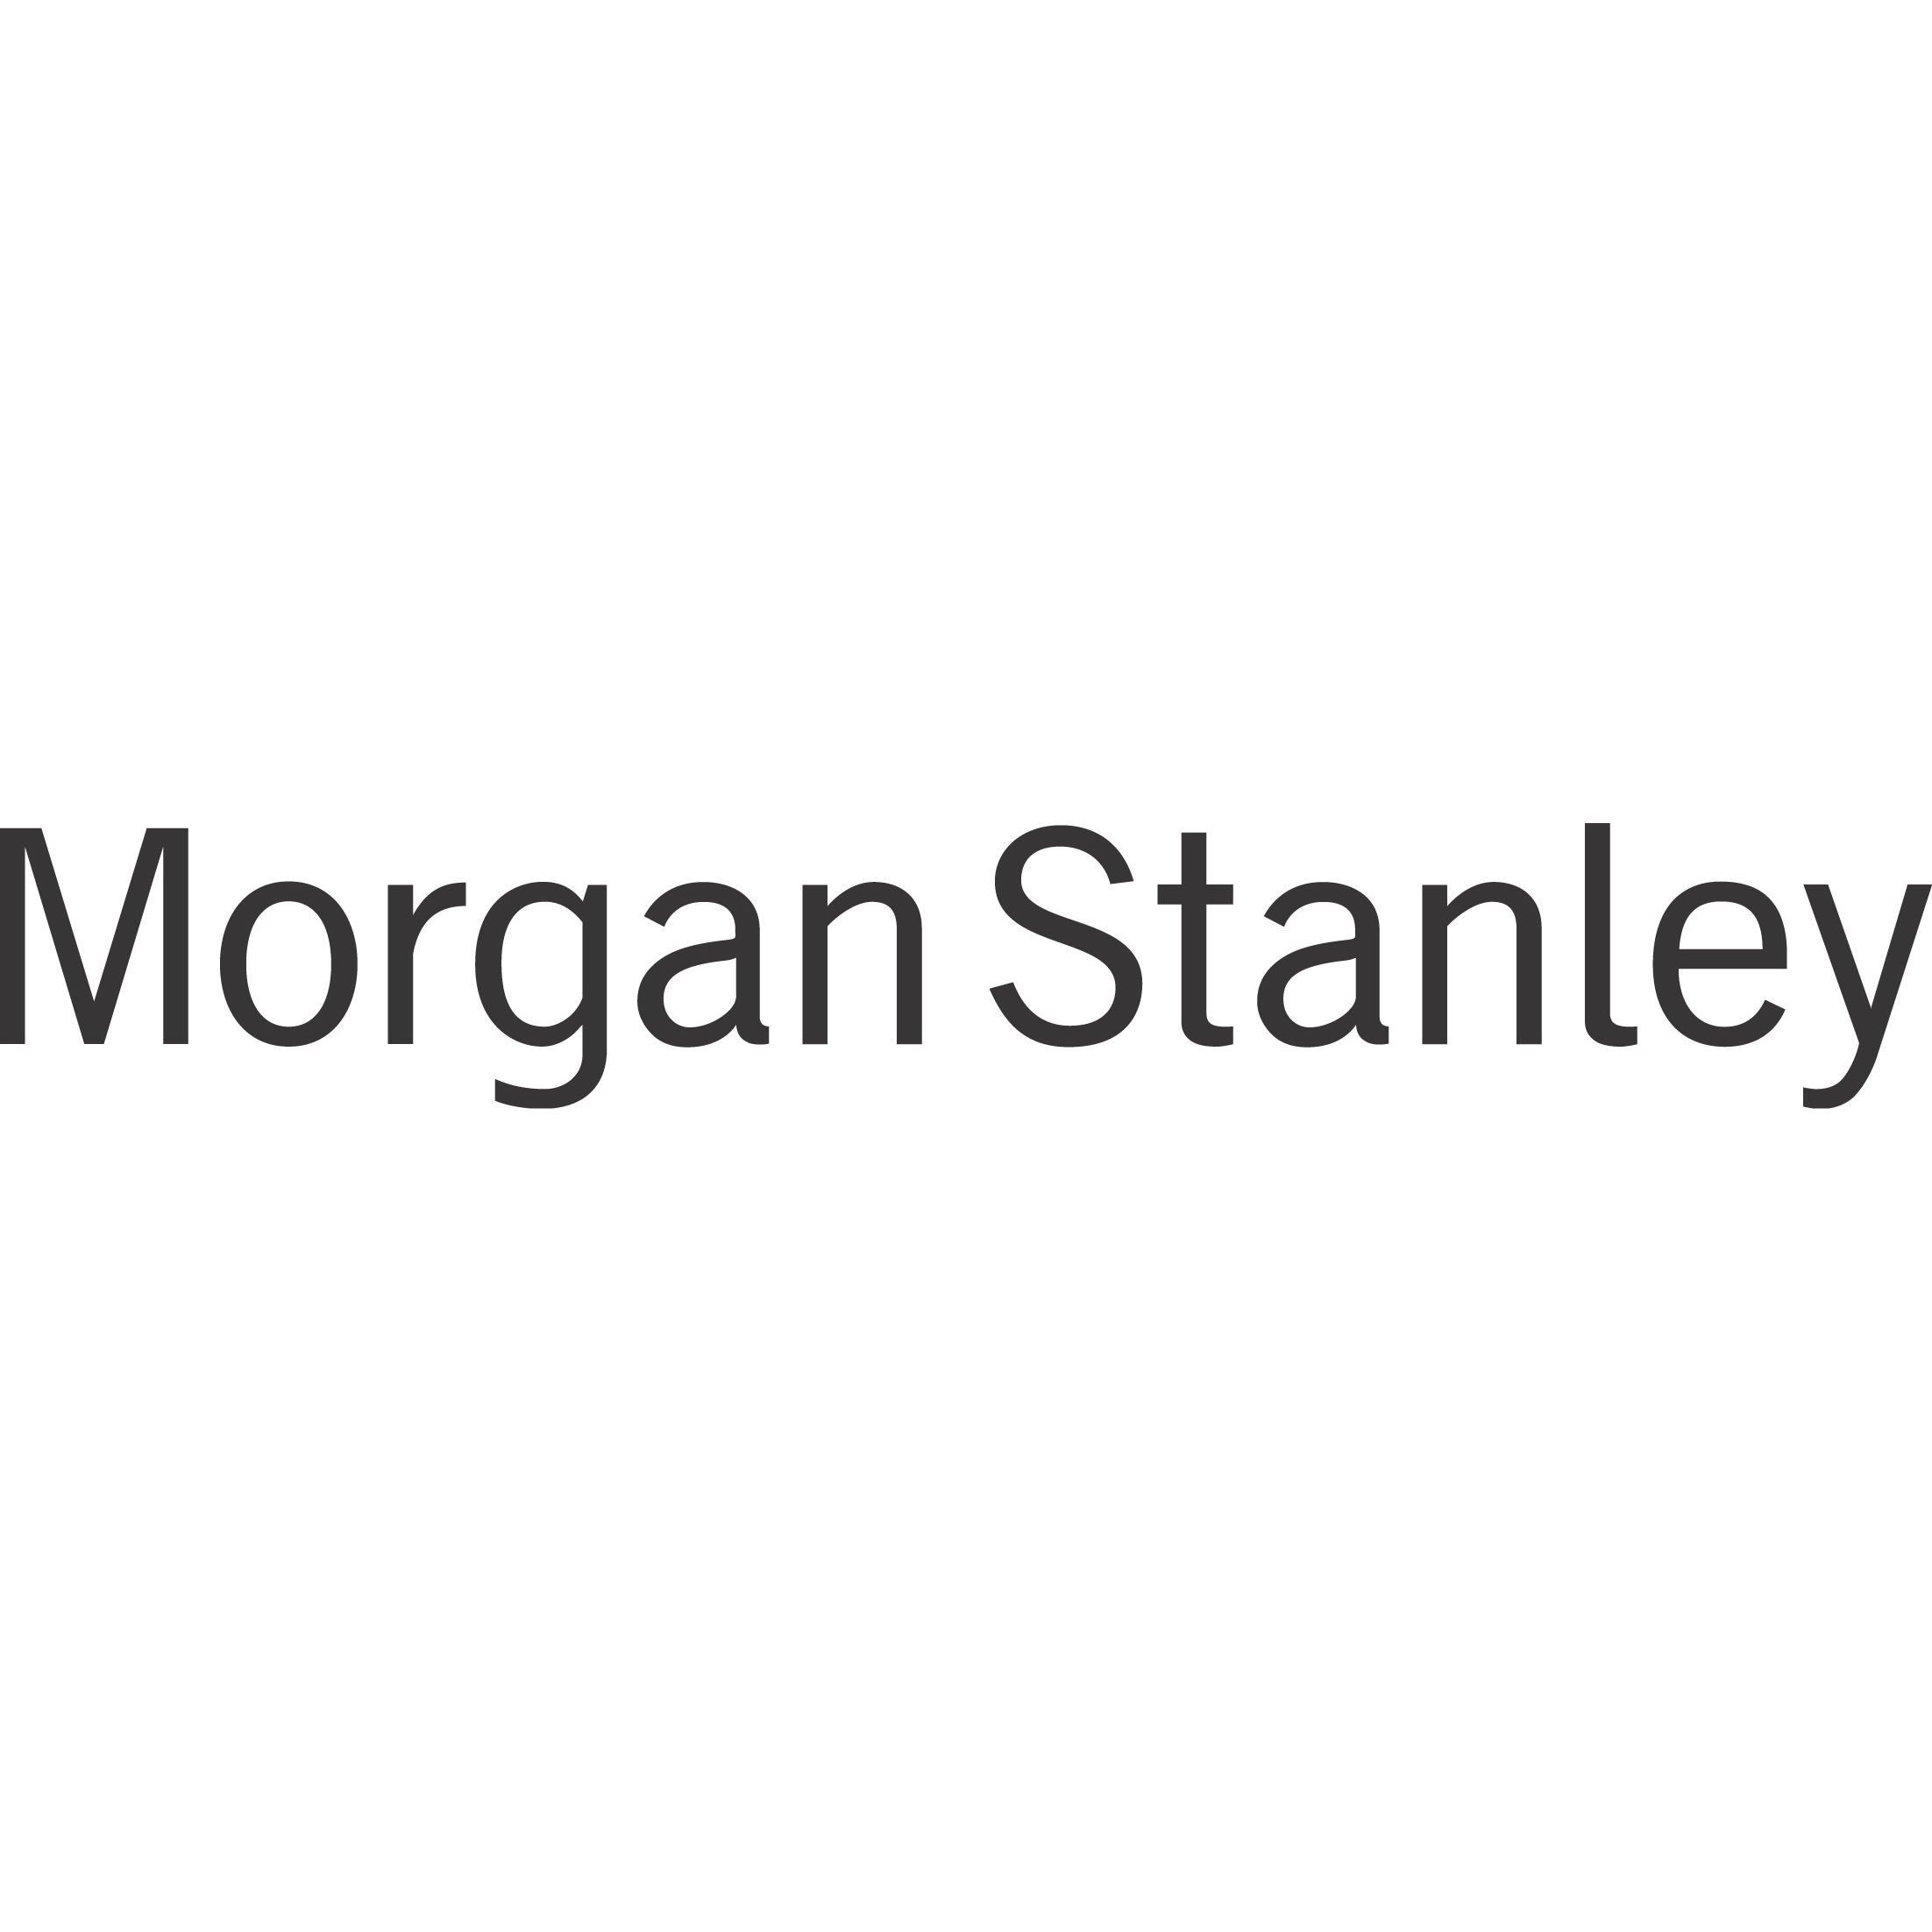 Carlie J. Powers - Morgan Stanley